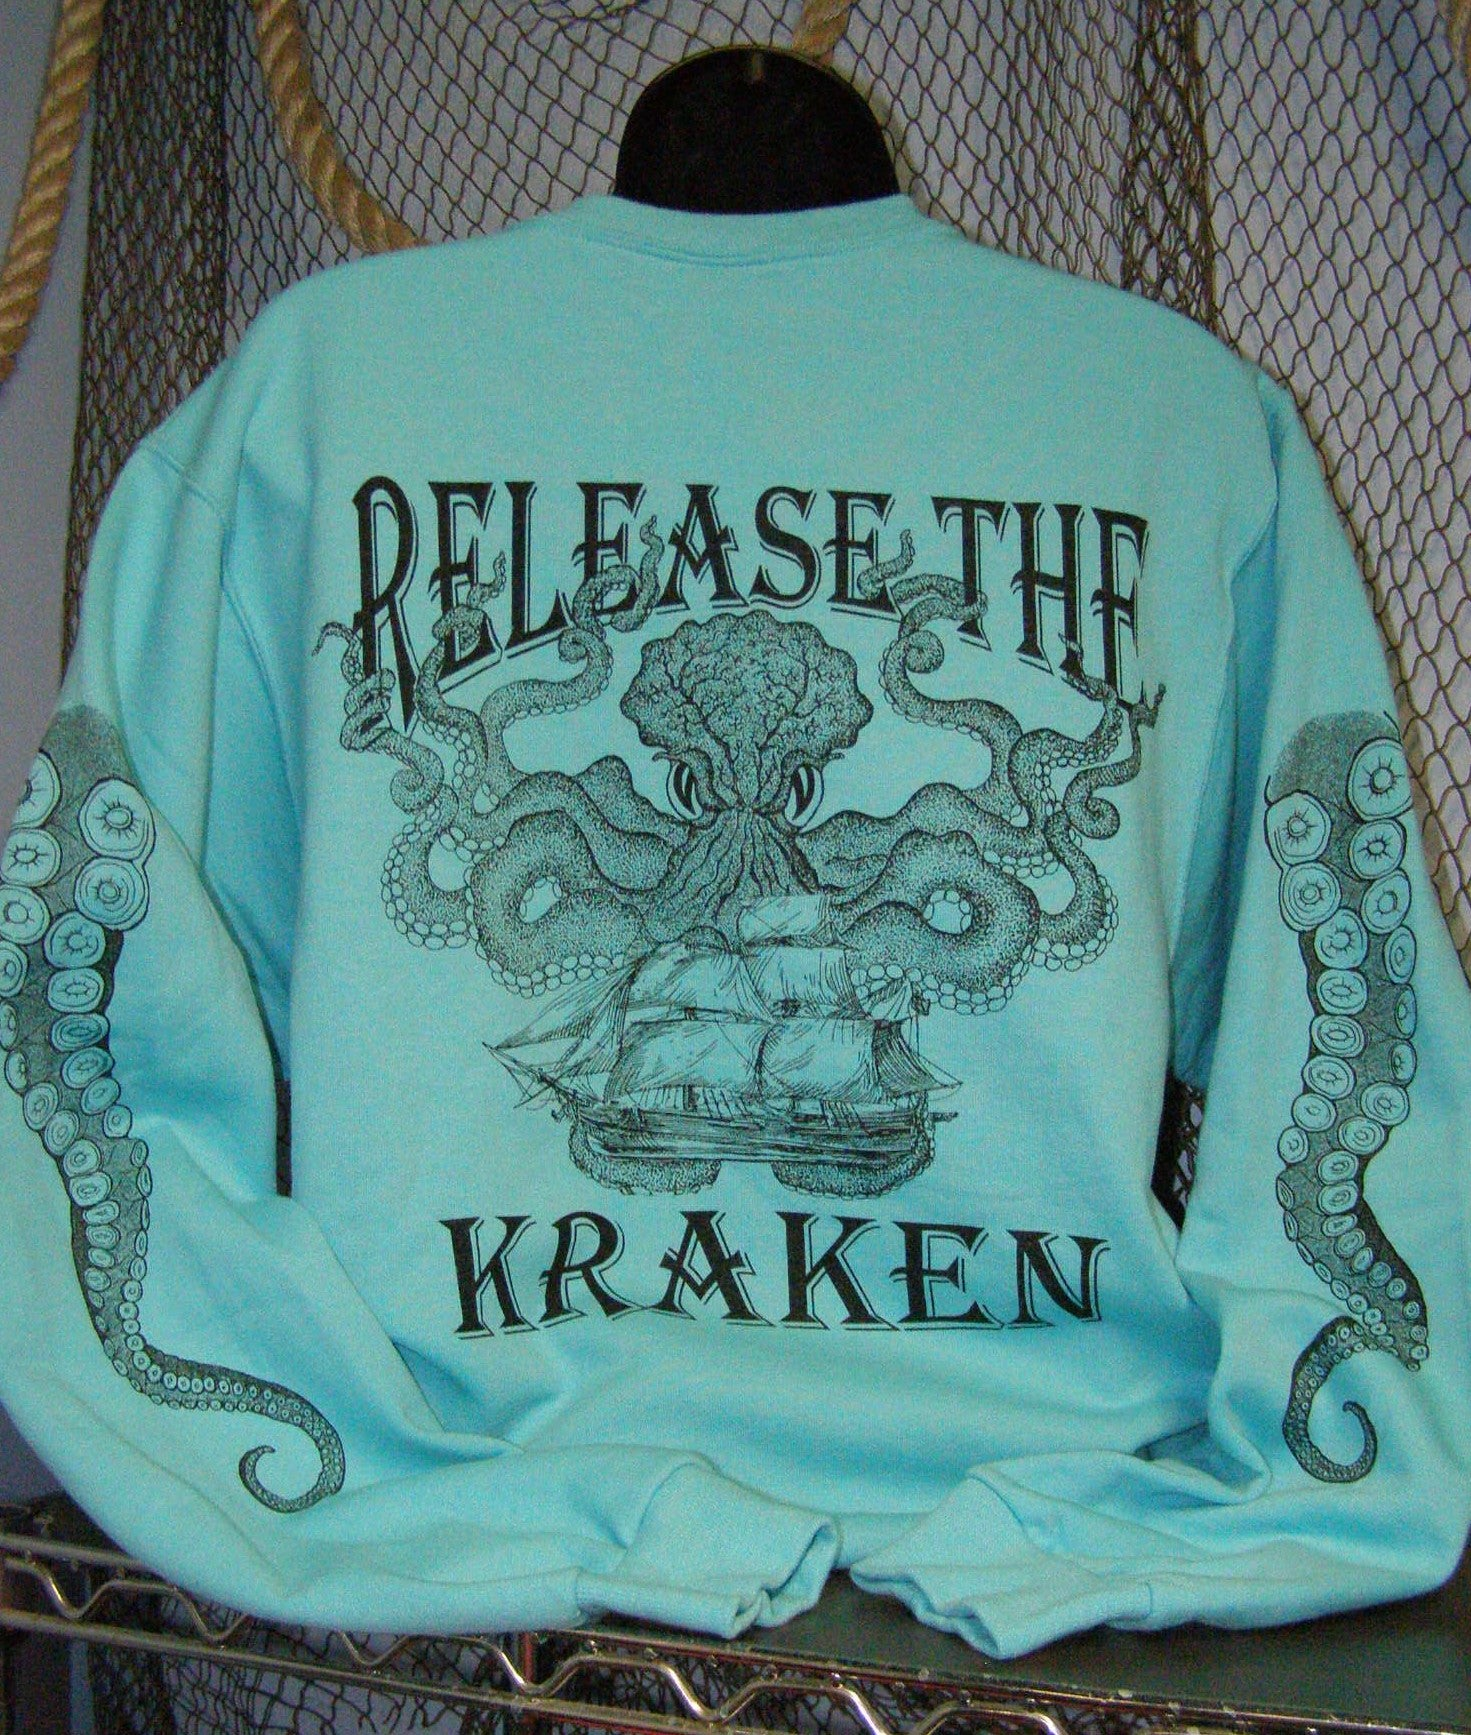 Crew Neck Sweatshirt - Release the Kraken Scuba Blue